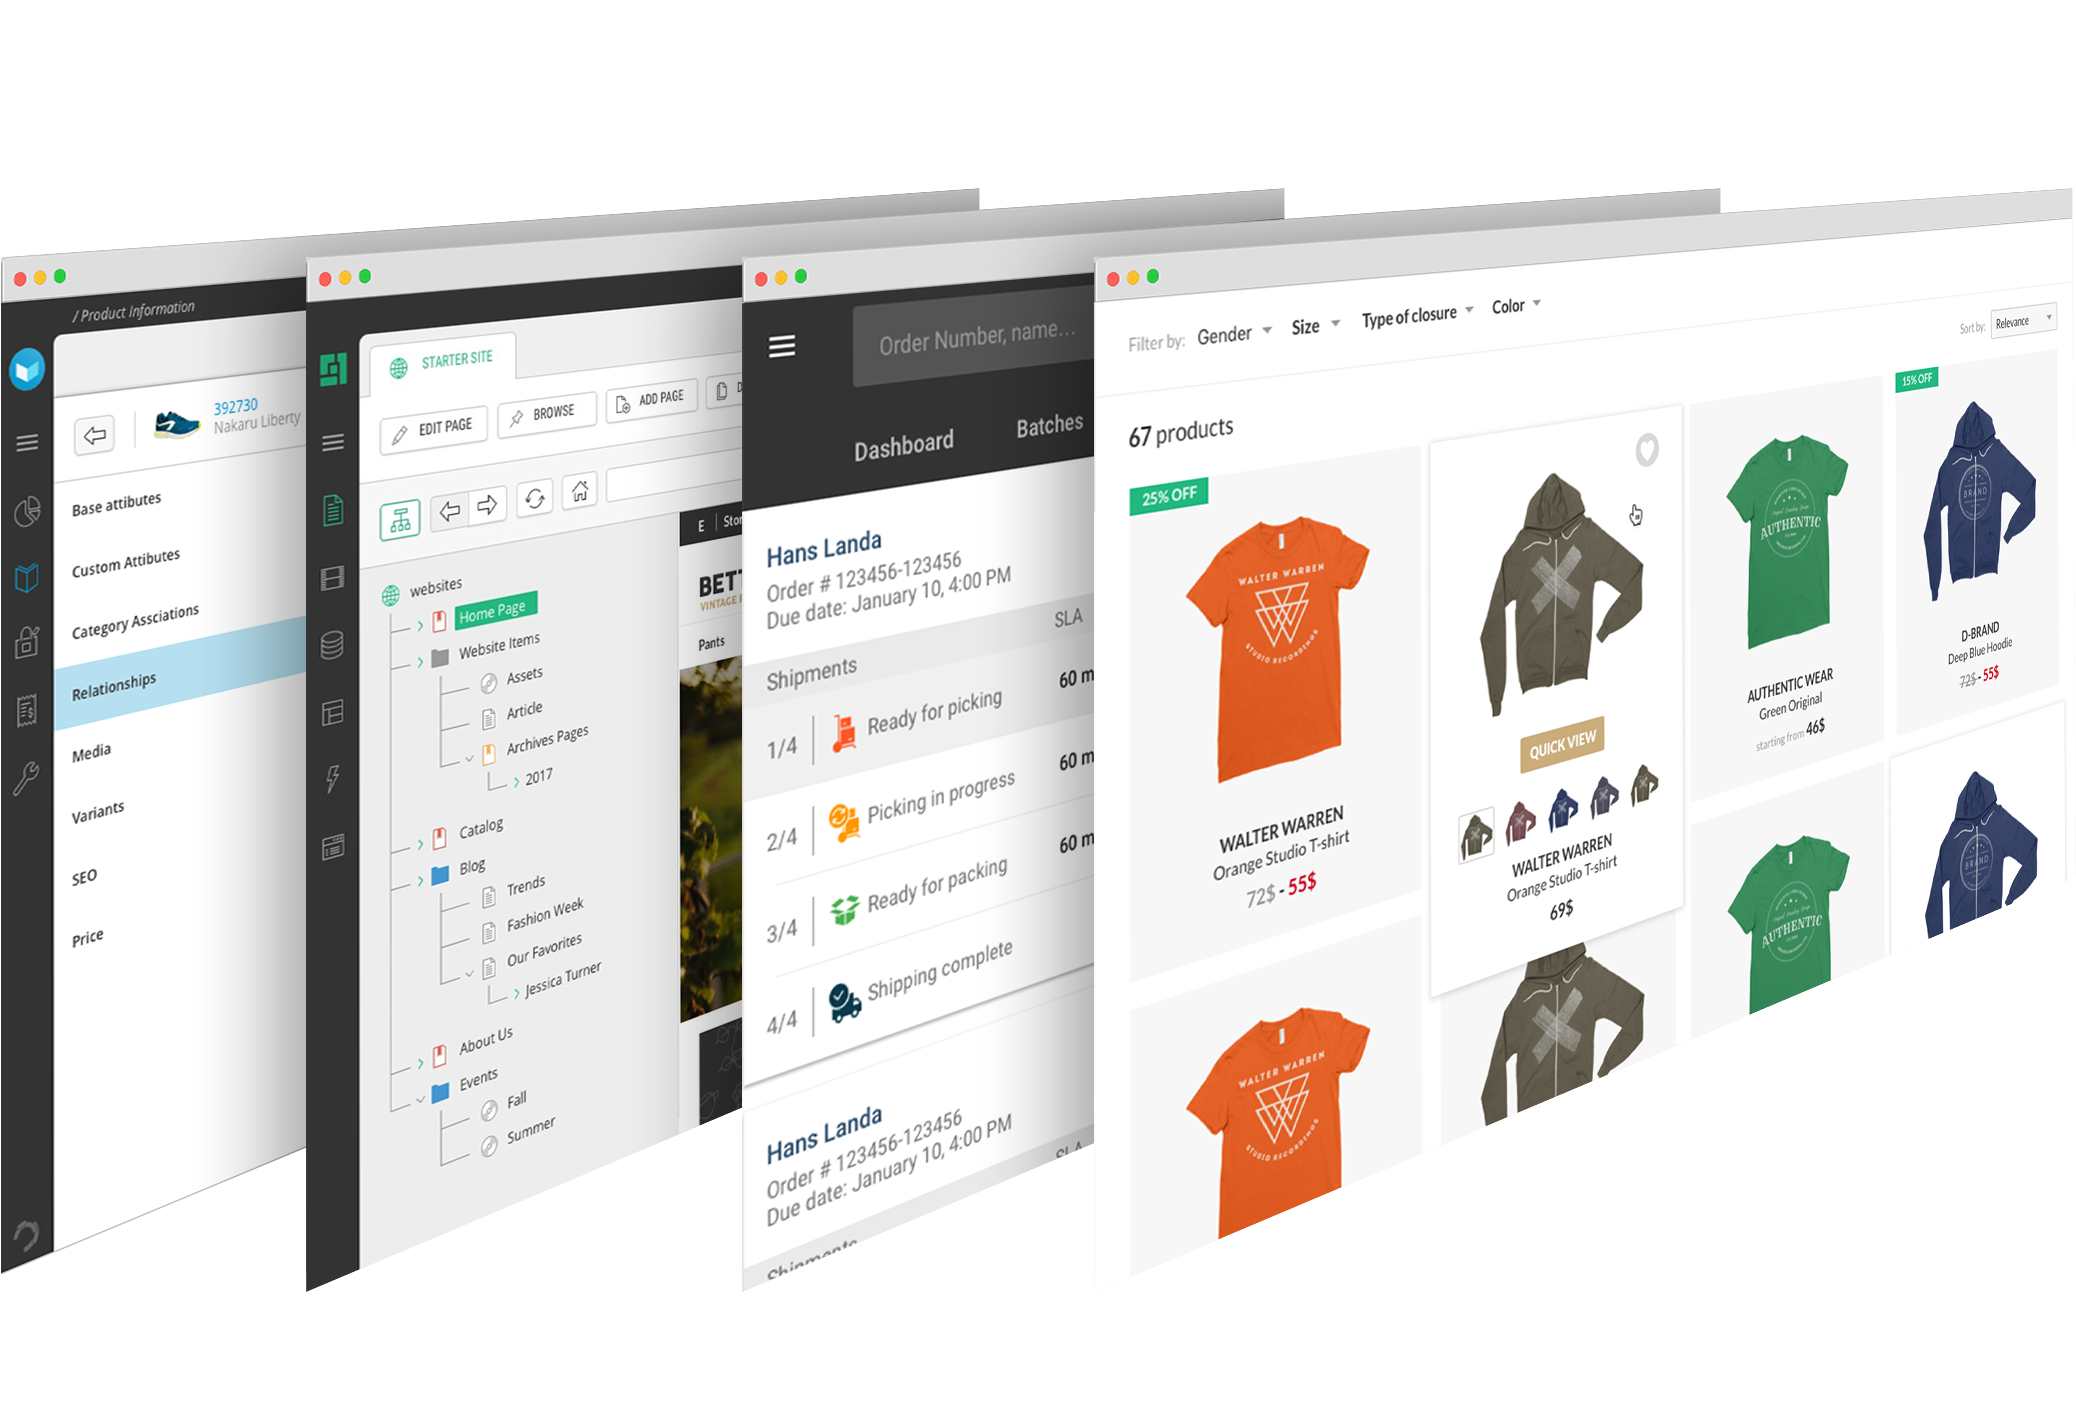 Product Merchandising, DCXM, Mobile Fulfillment and Reference Storefront